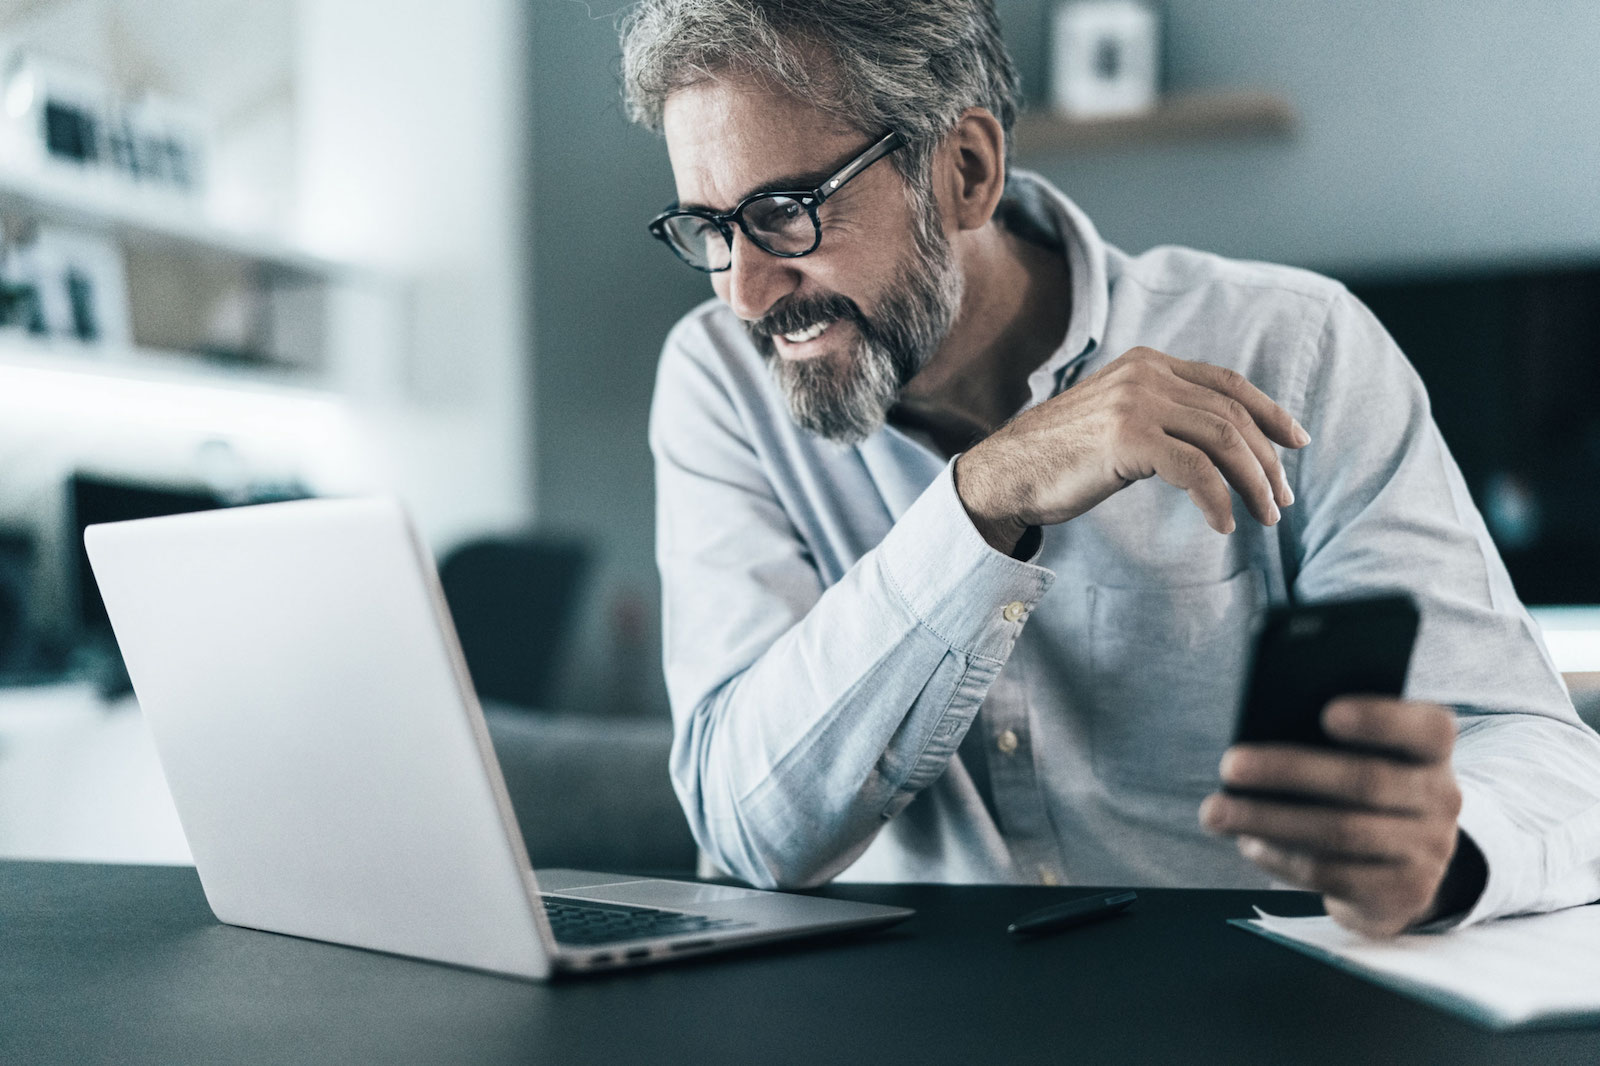 man with beard smiling holding smart phone looking at computer